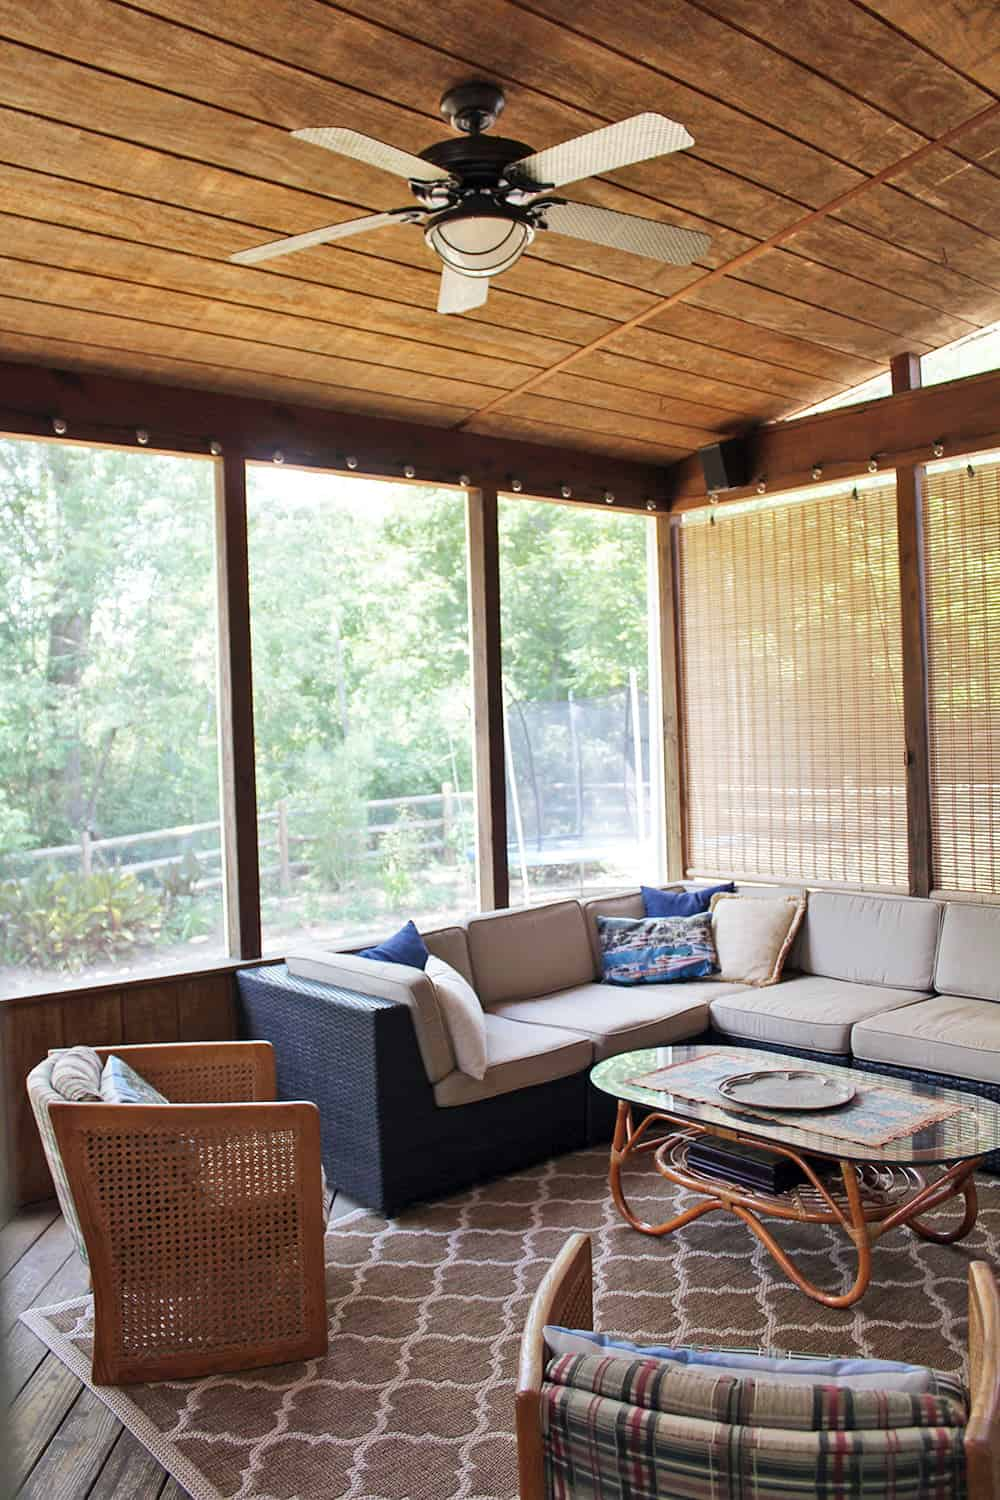 Charming Screened Patio - Porch Ideas on Patio Ideas 2020 id=45014